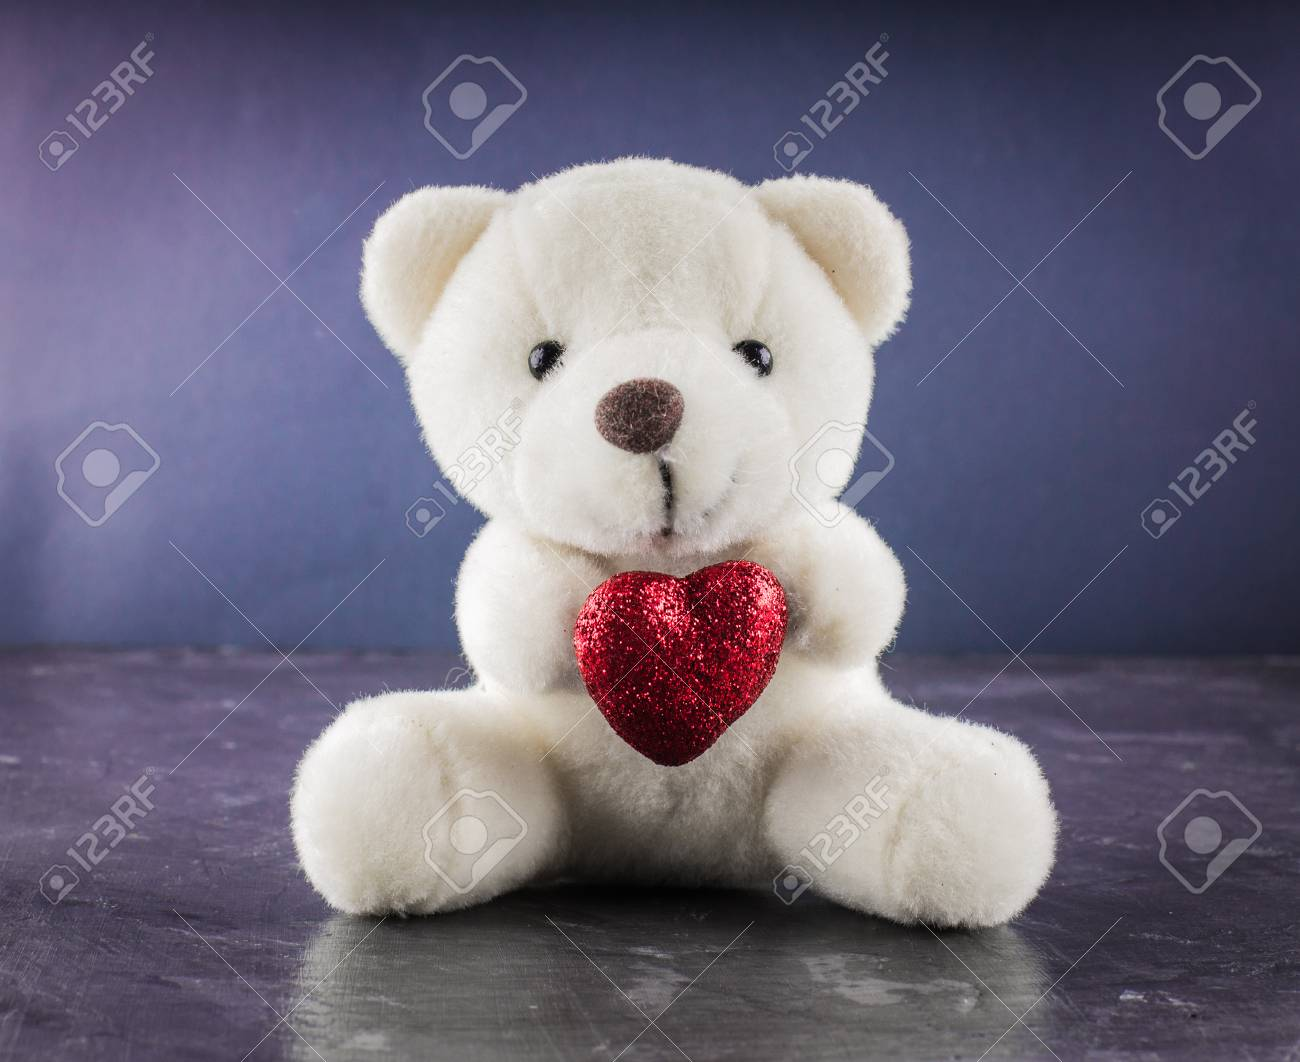 white teddy bear with love letter on red heart on gray background